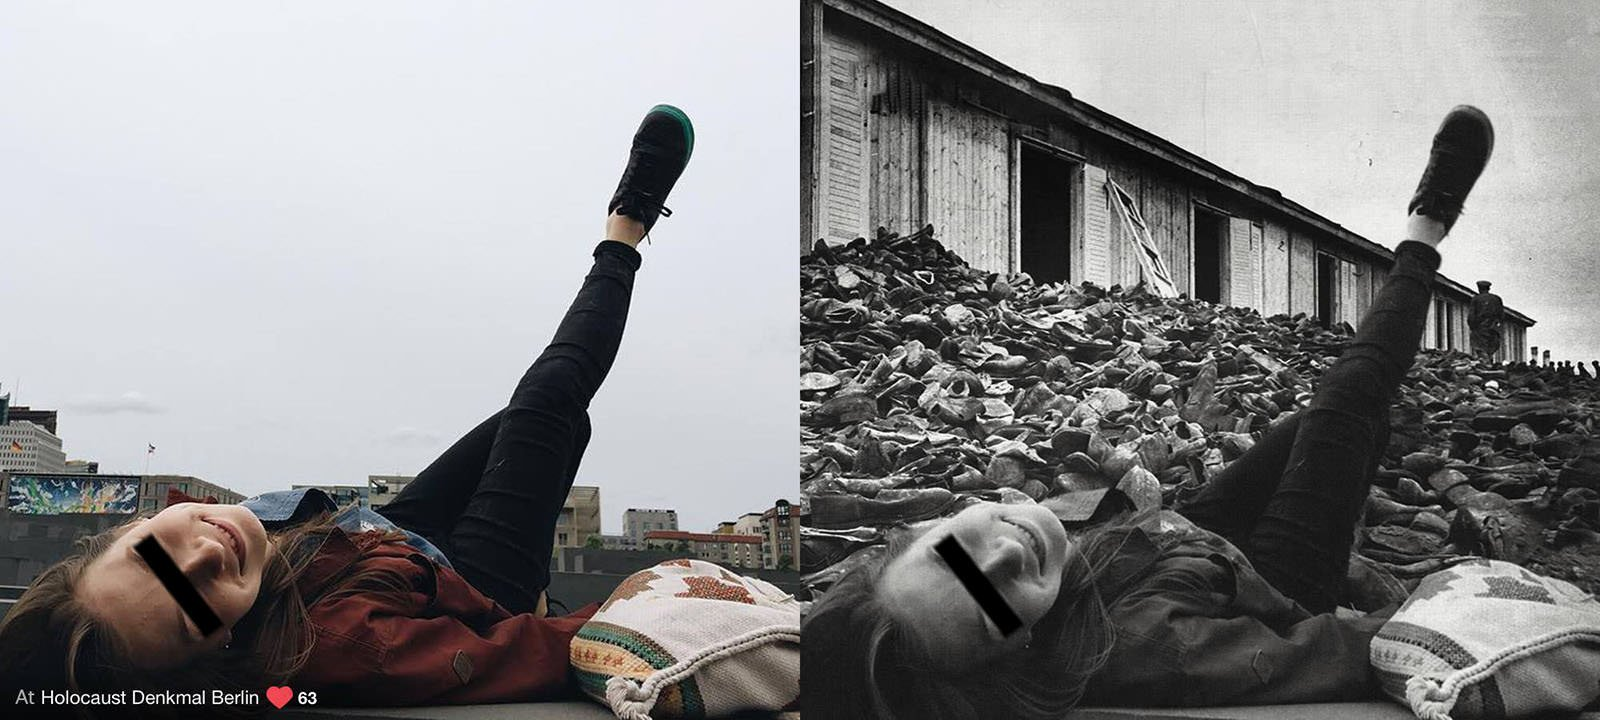 APhotographer Was Shamed for Using Photoshop, but She Showed the Originals and Fought Back